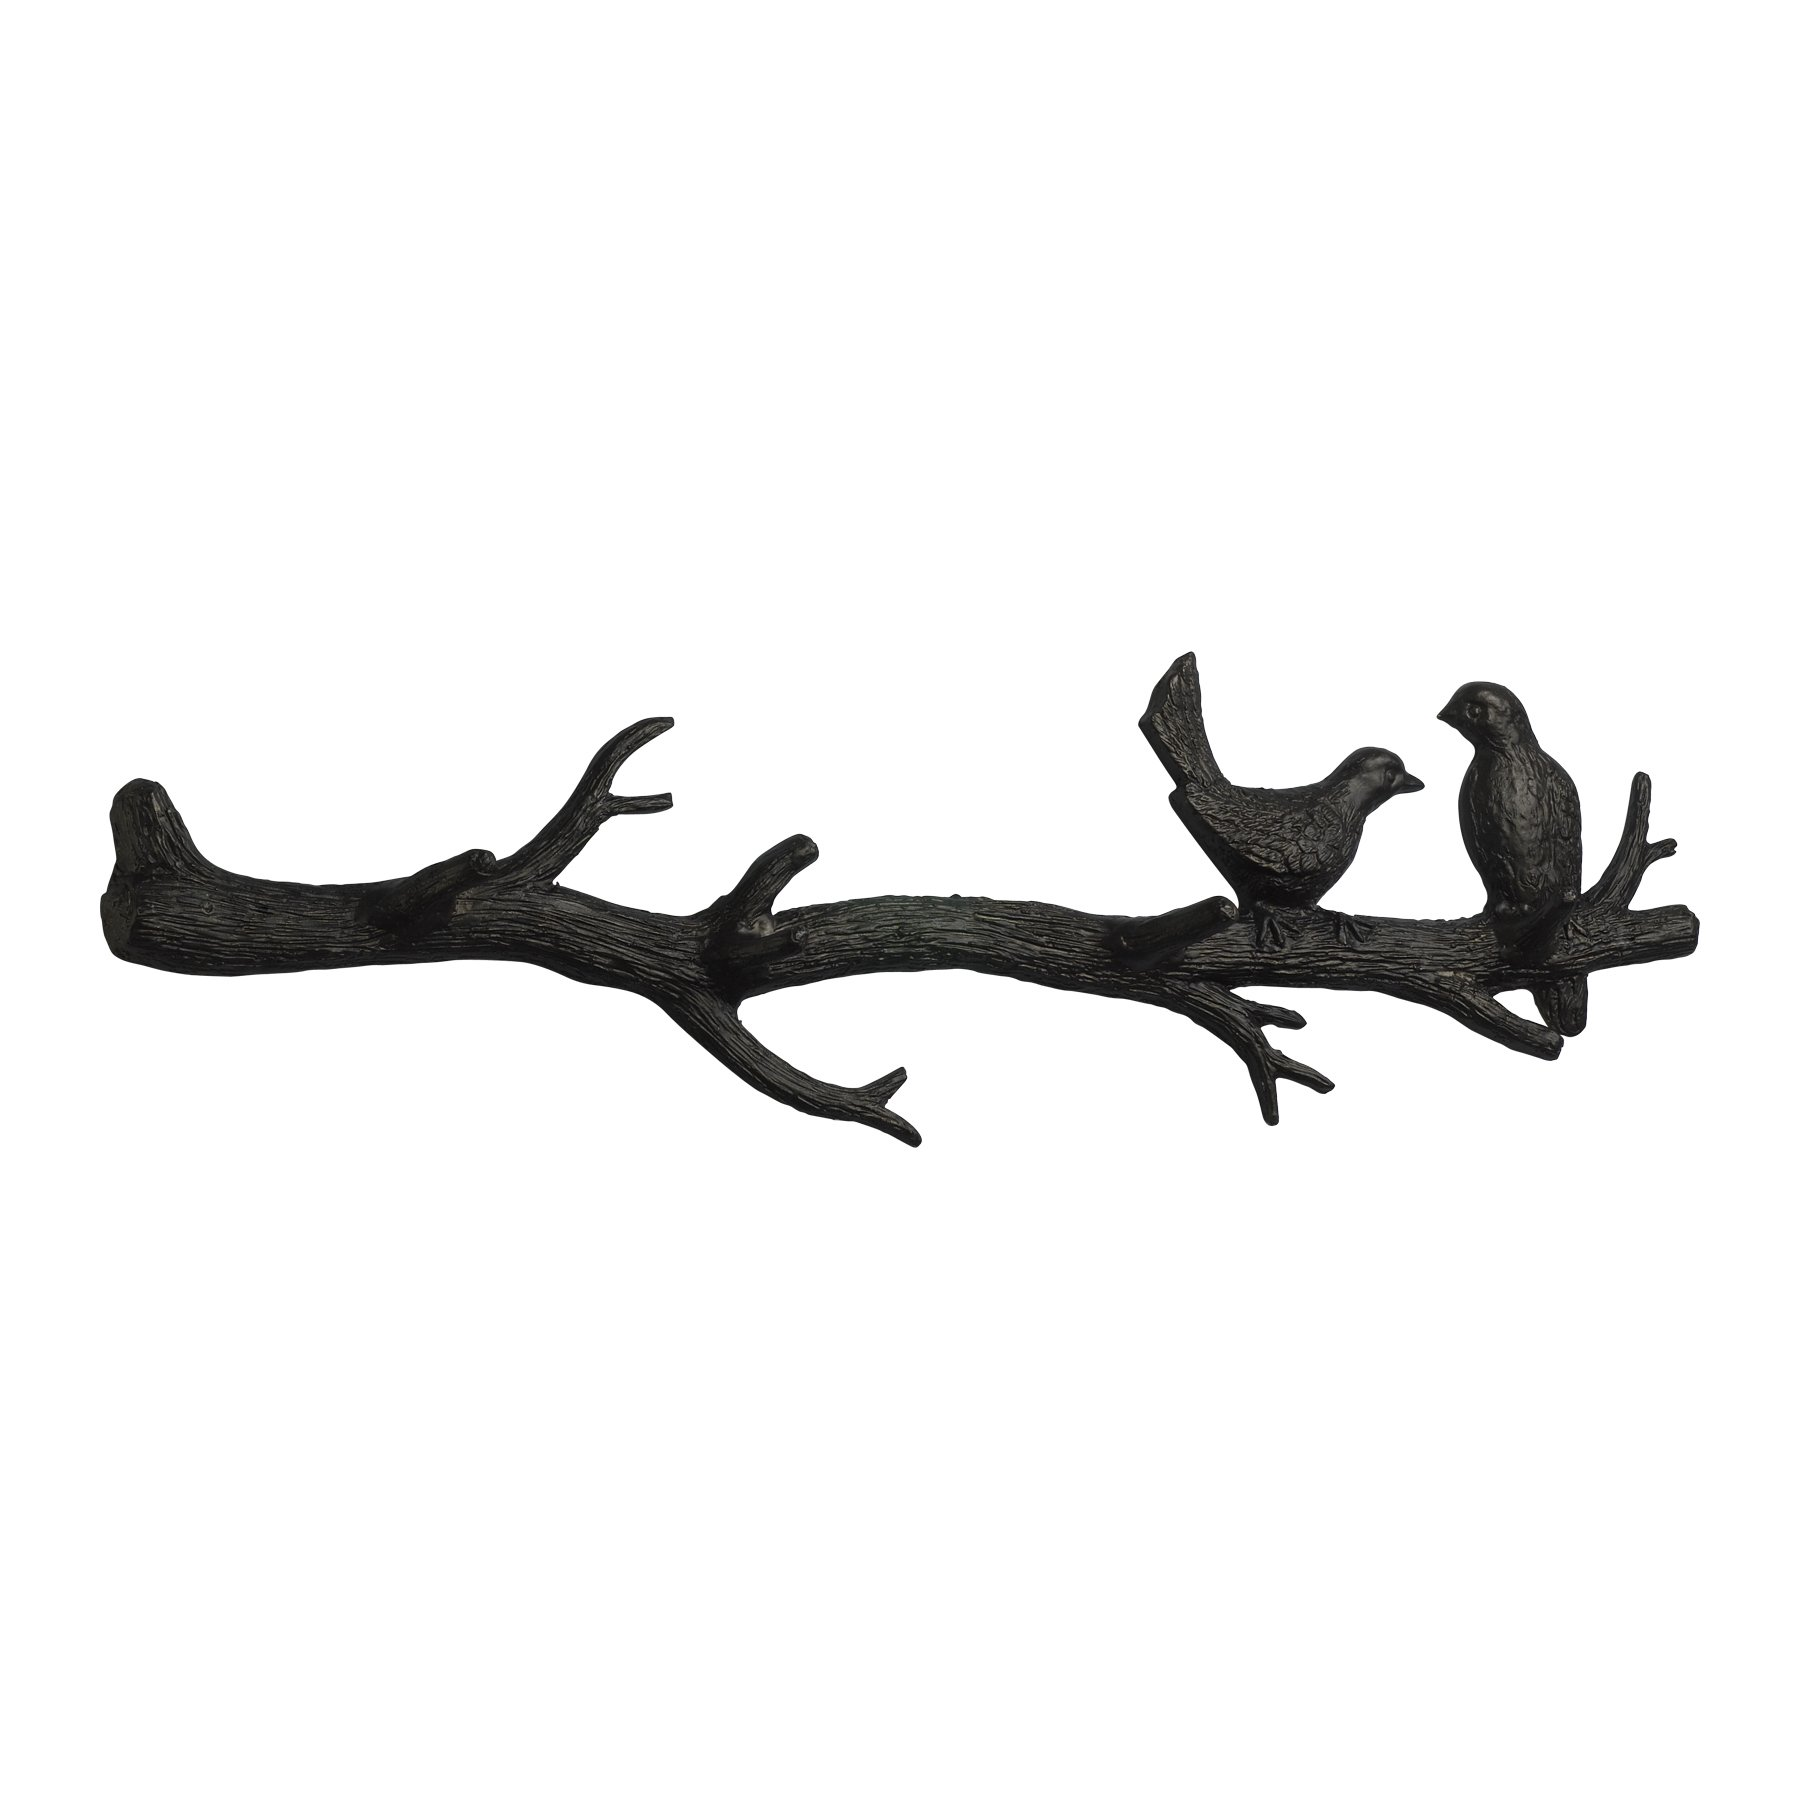 Cyan Design 01868 Bird Branch Coat Hook Ideal Gift for Wedding, Floral / Floor Vase, Party, Home Decor, Office, Spa